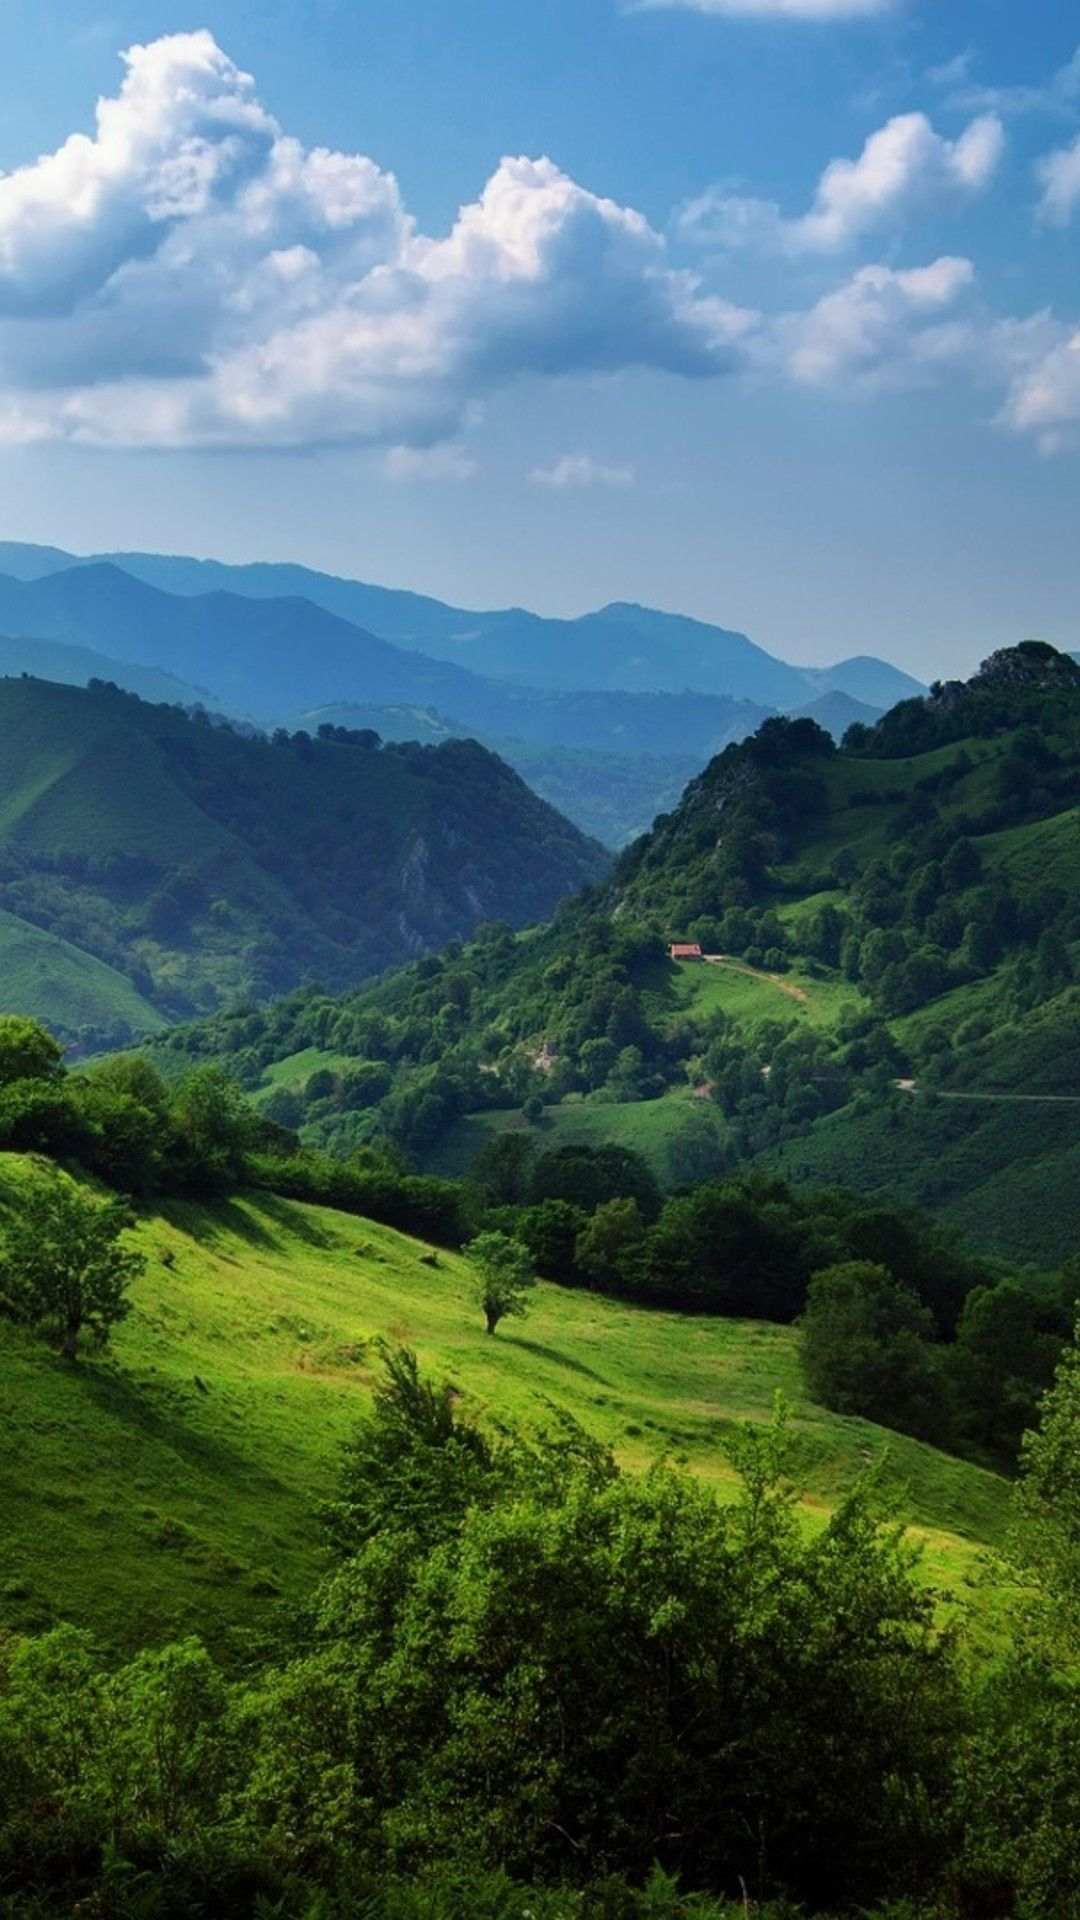 Wallpaper Download 1080x1920 Cantabrian Mountains Amazing Green